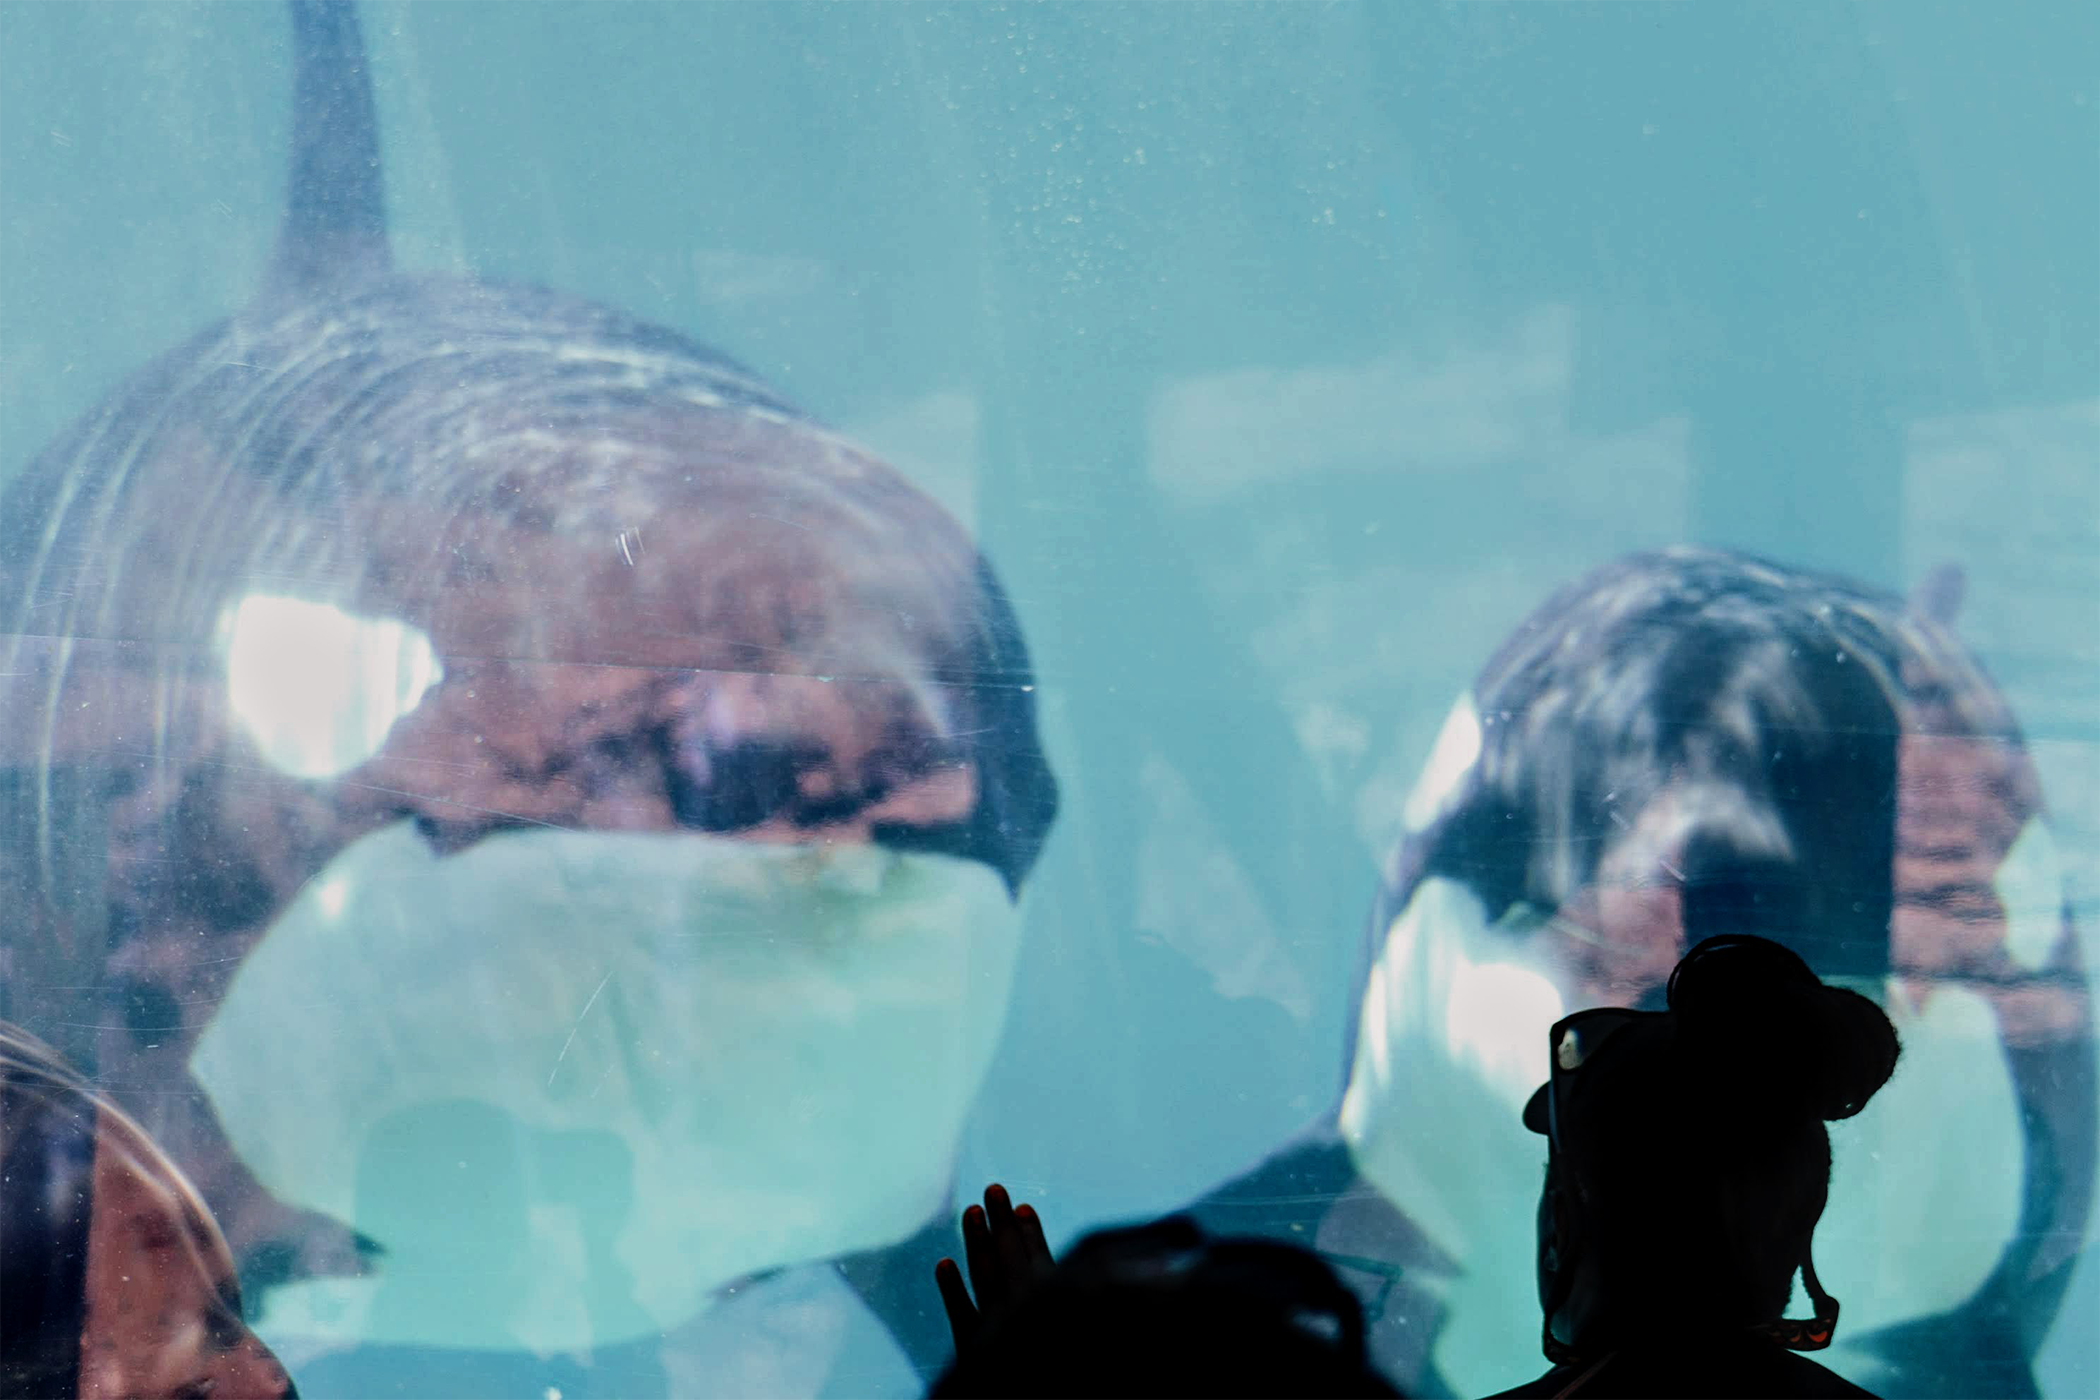 Behind The Thrills | Opinion: SeaWorld's Soul Must Remain With Animals